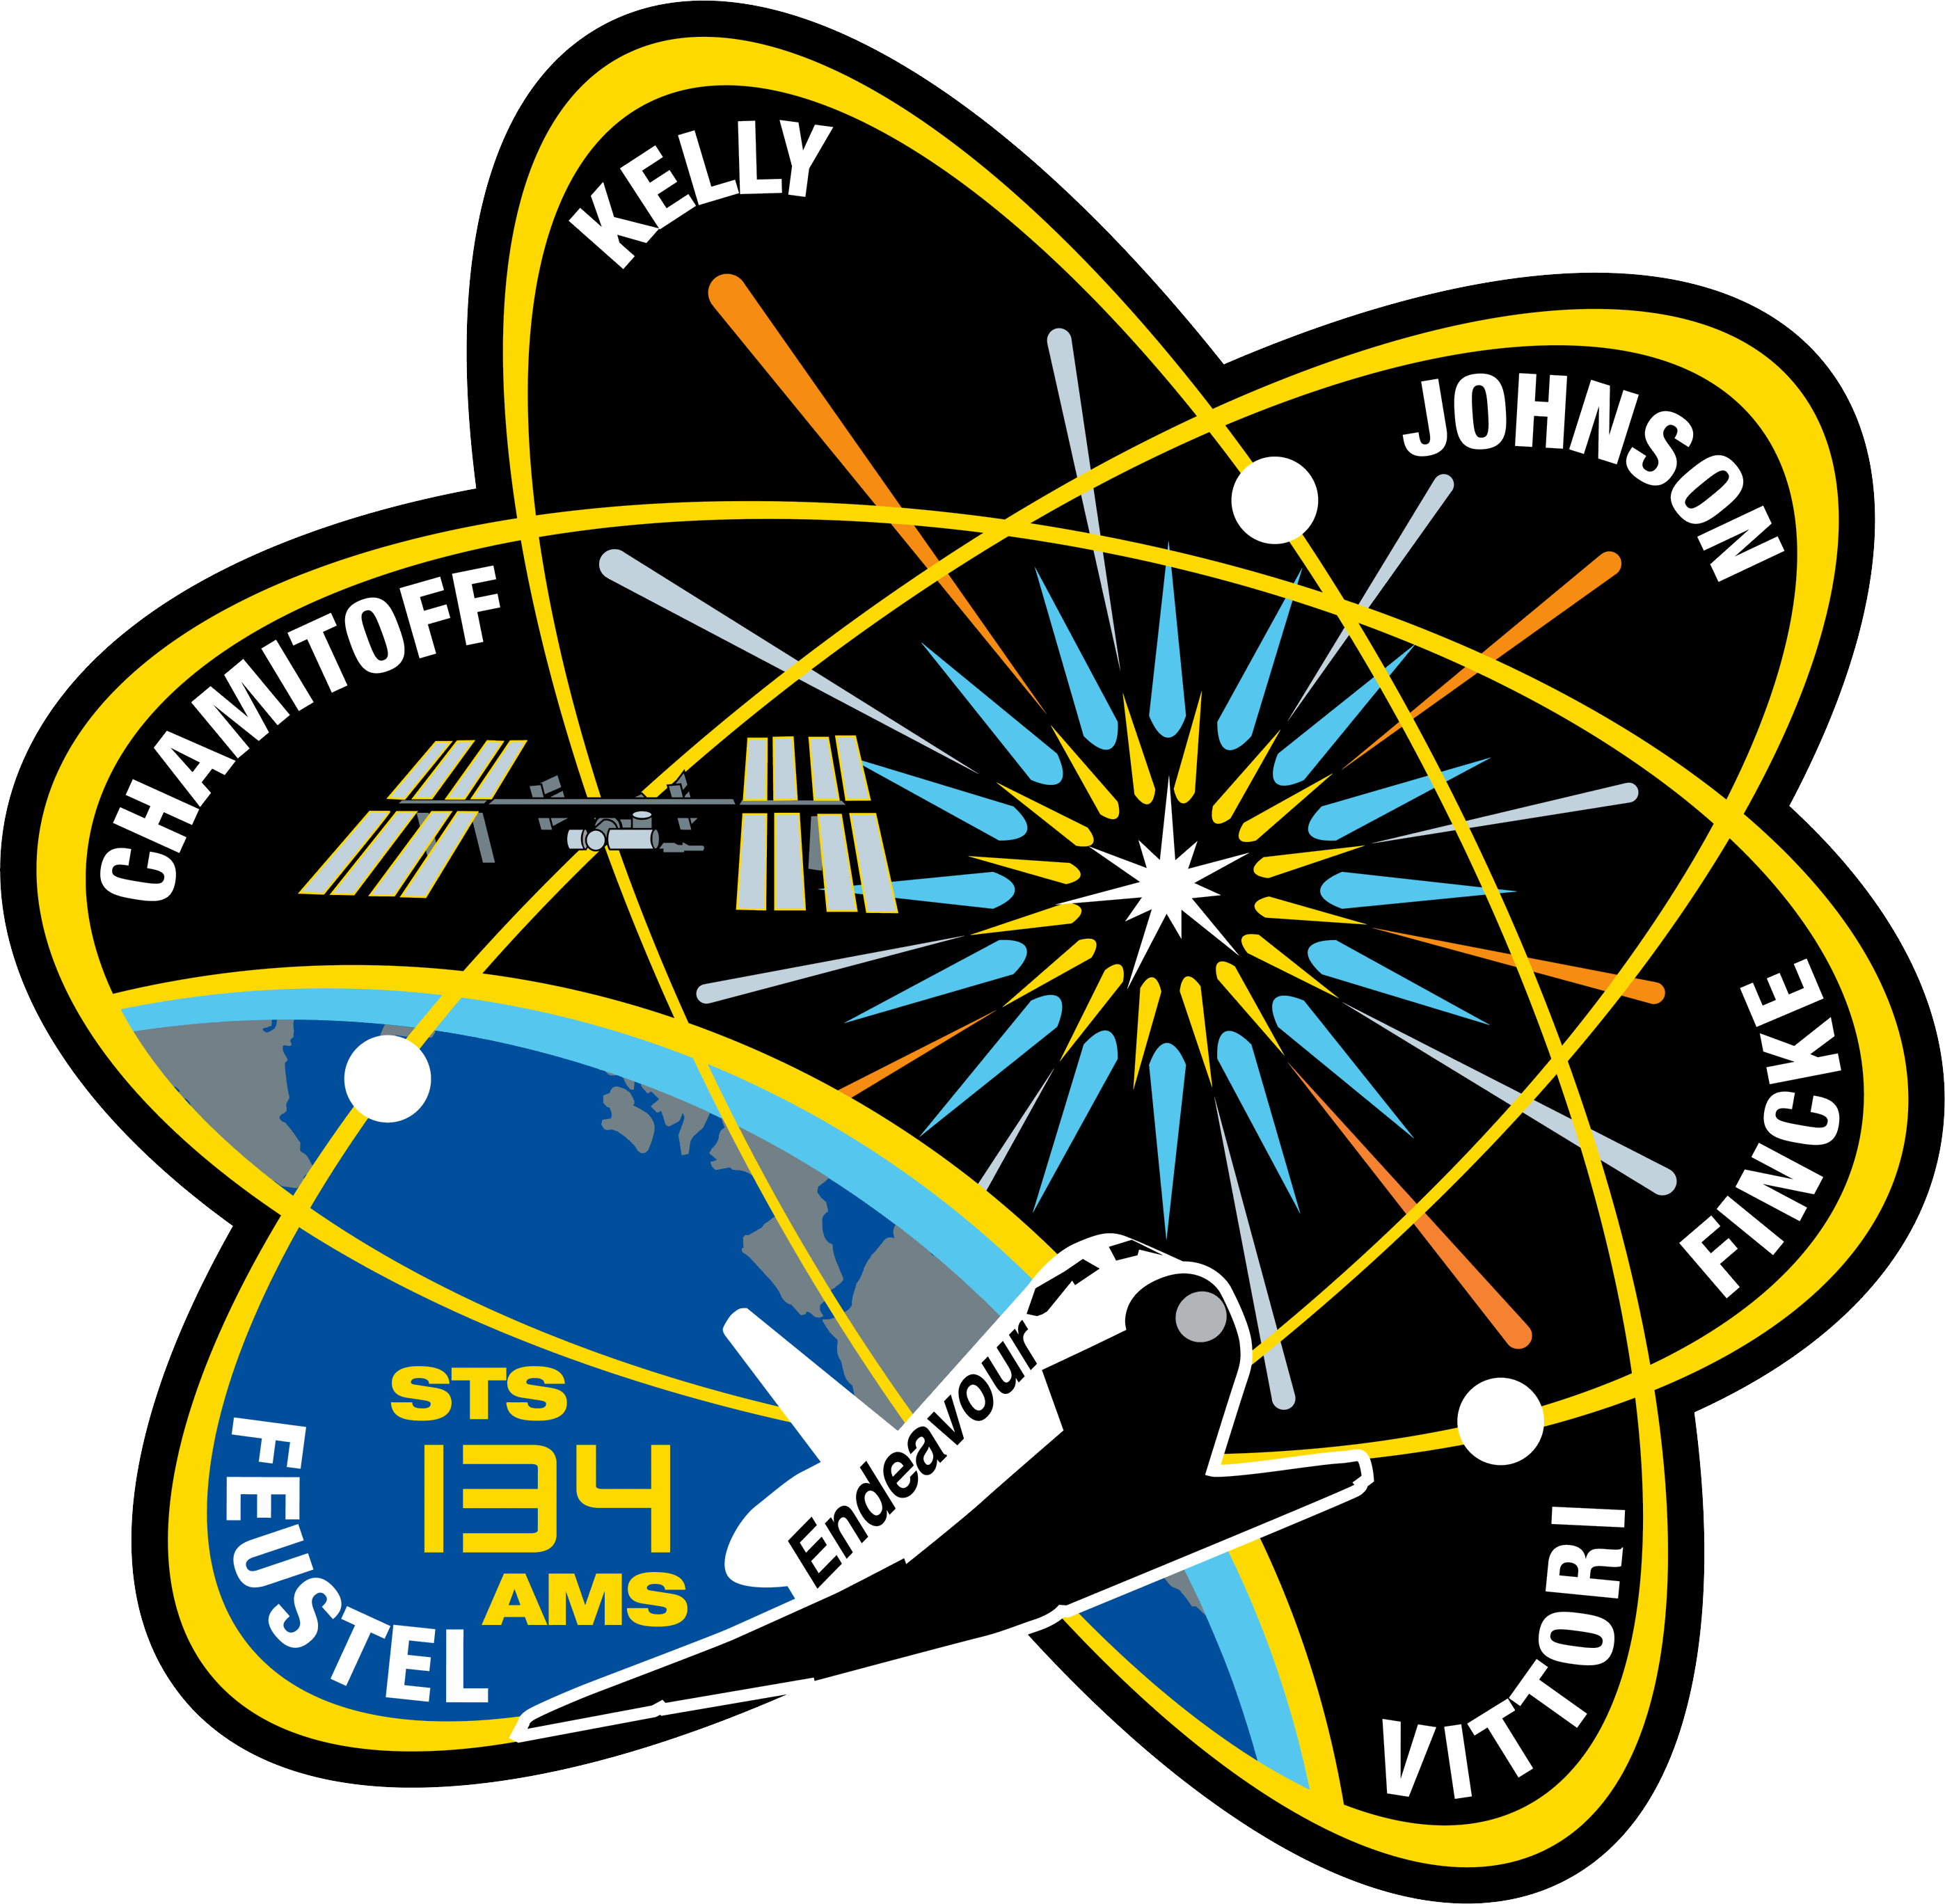 STS-134 crew patch, International Space Station (ISS)